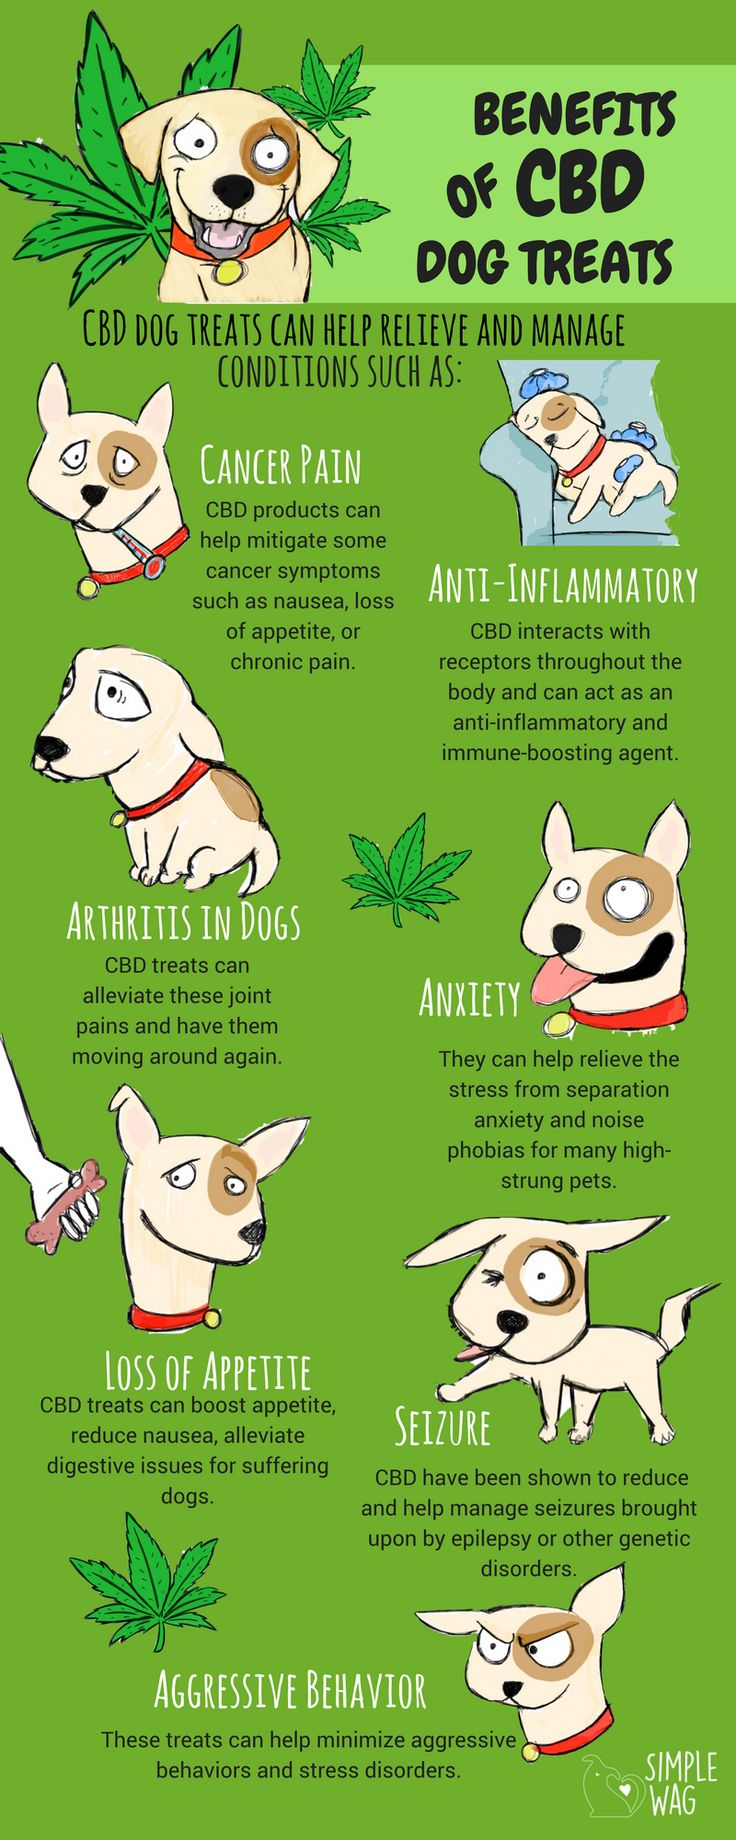 Why CBD Dog Treats Are The Best For Your Dog - Infographic